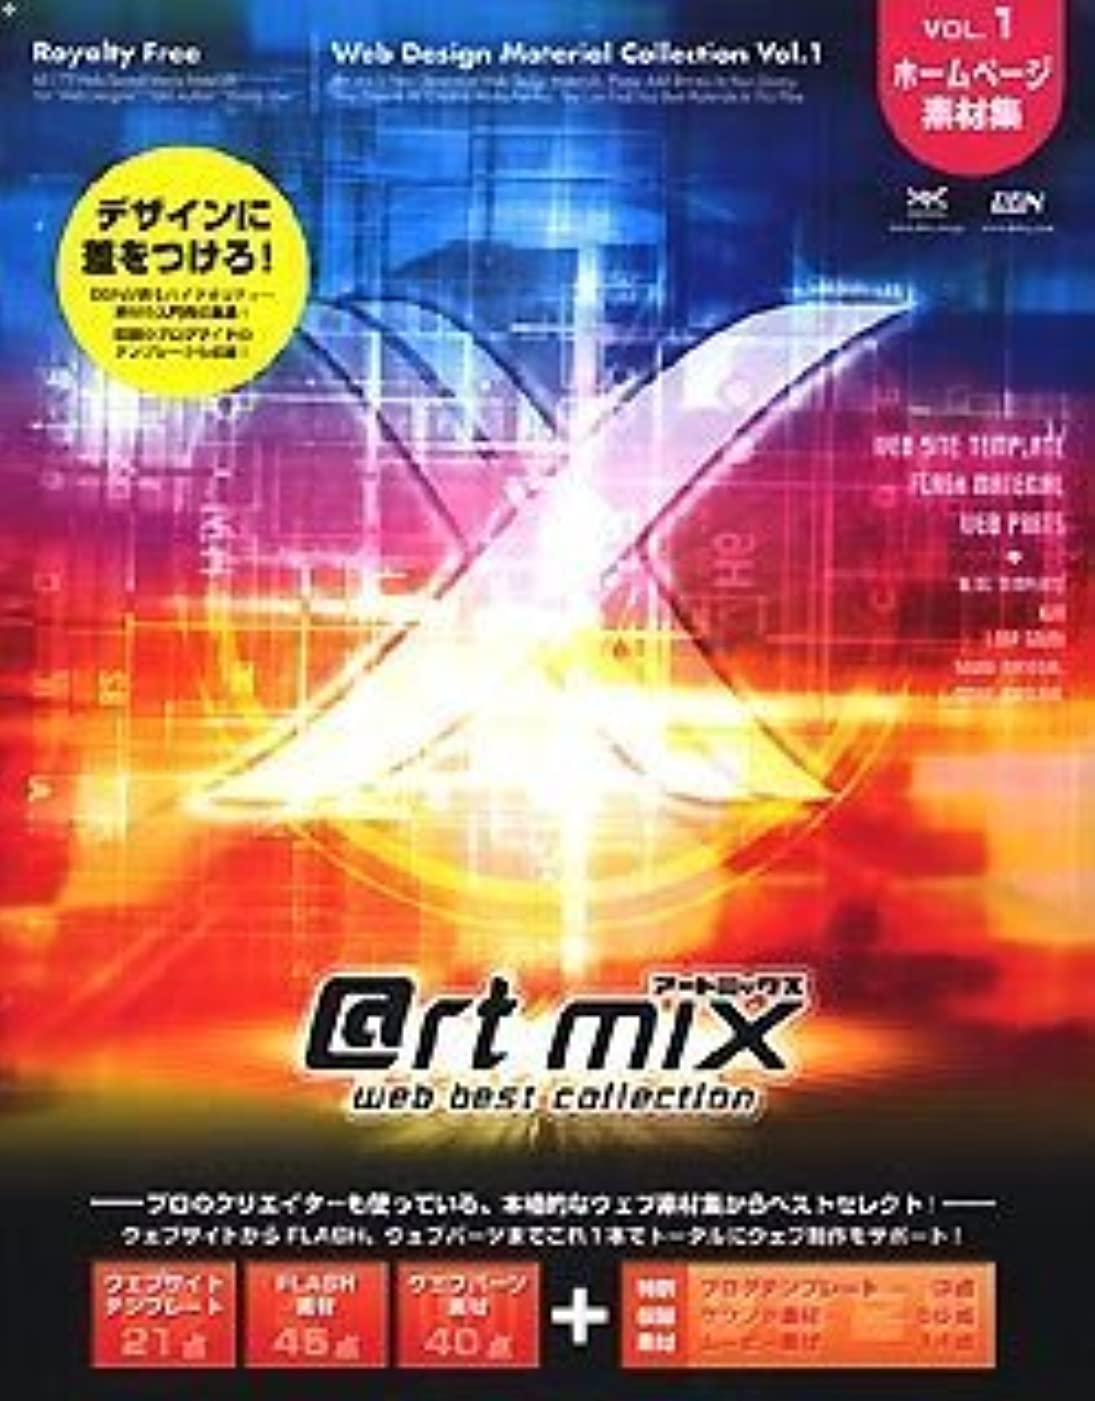 @rt mix web best collection